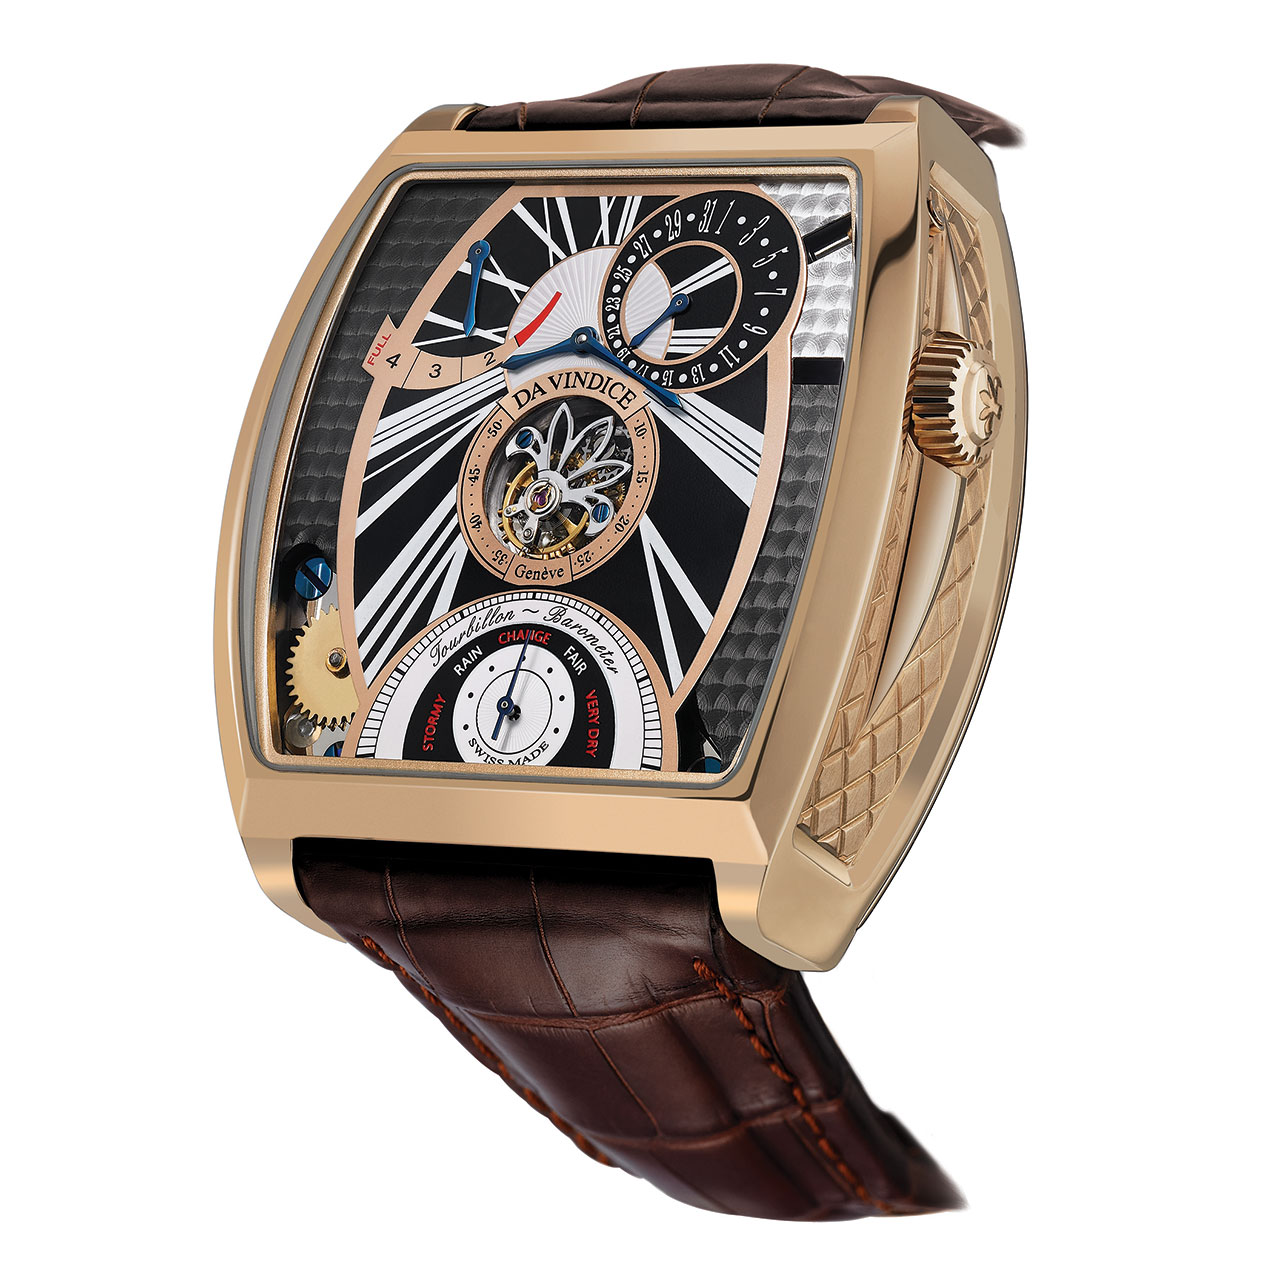 Da Vindice Geneve The Tourbillon Barometer Watch